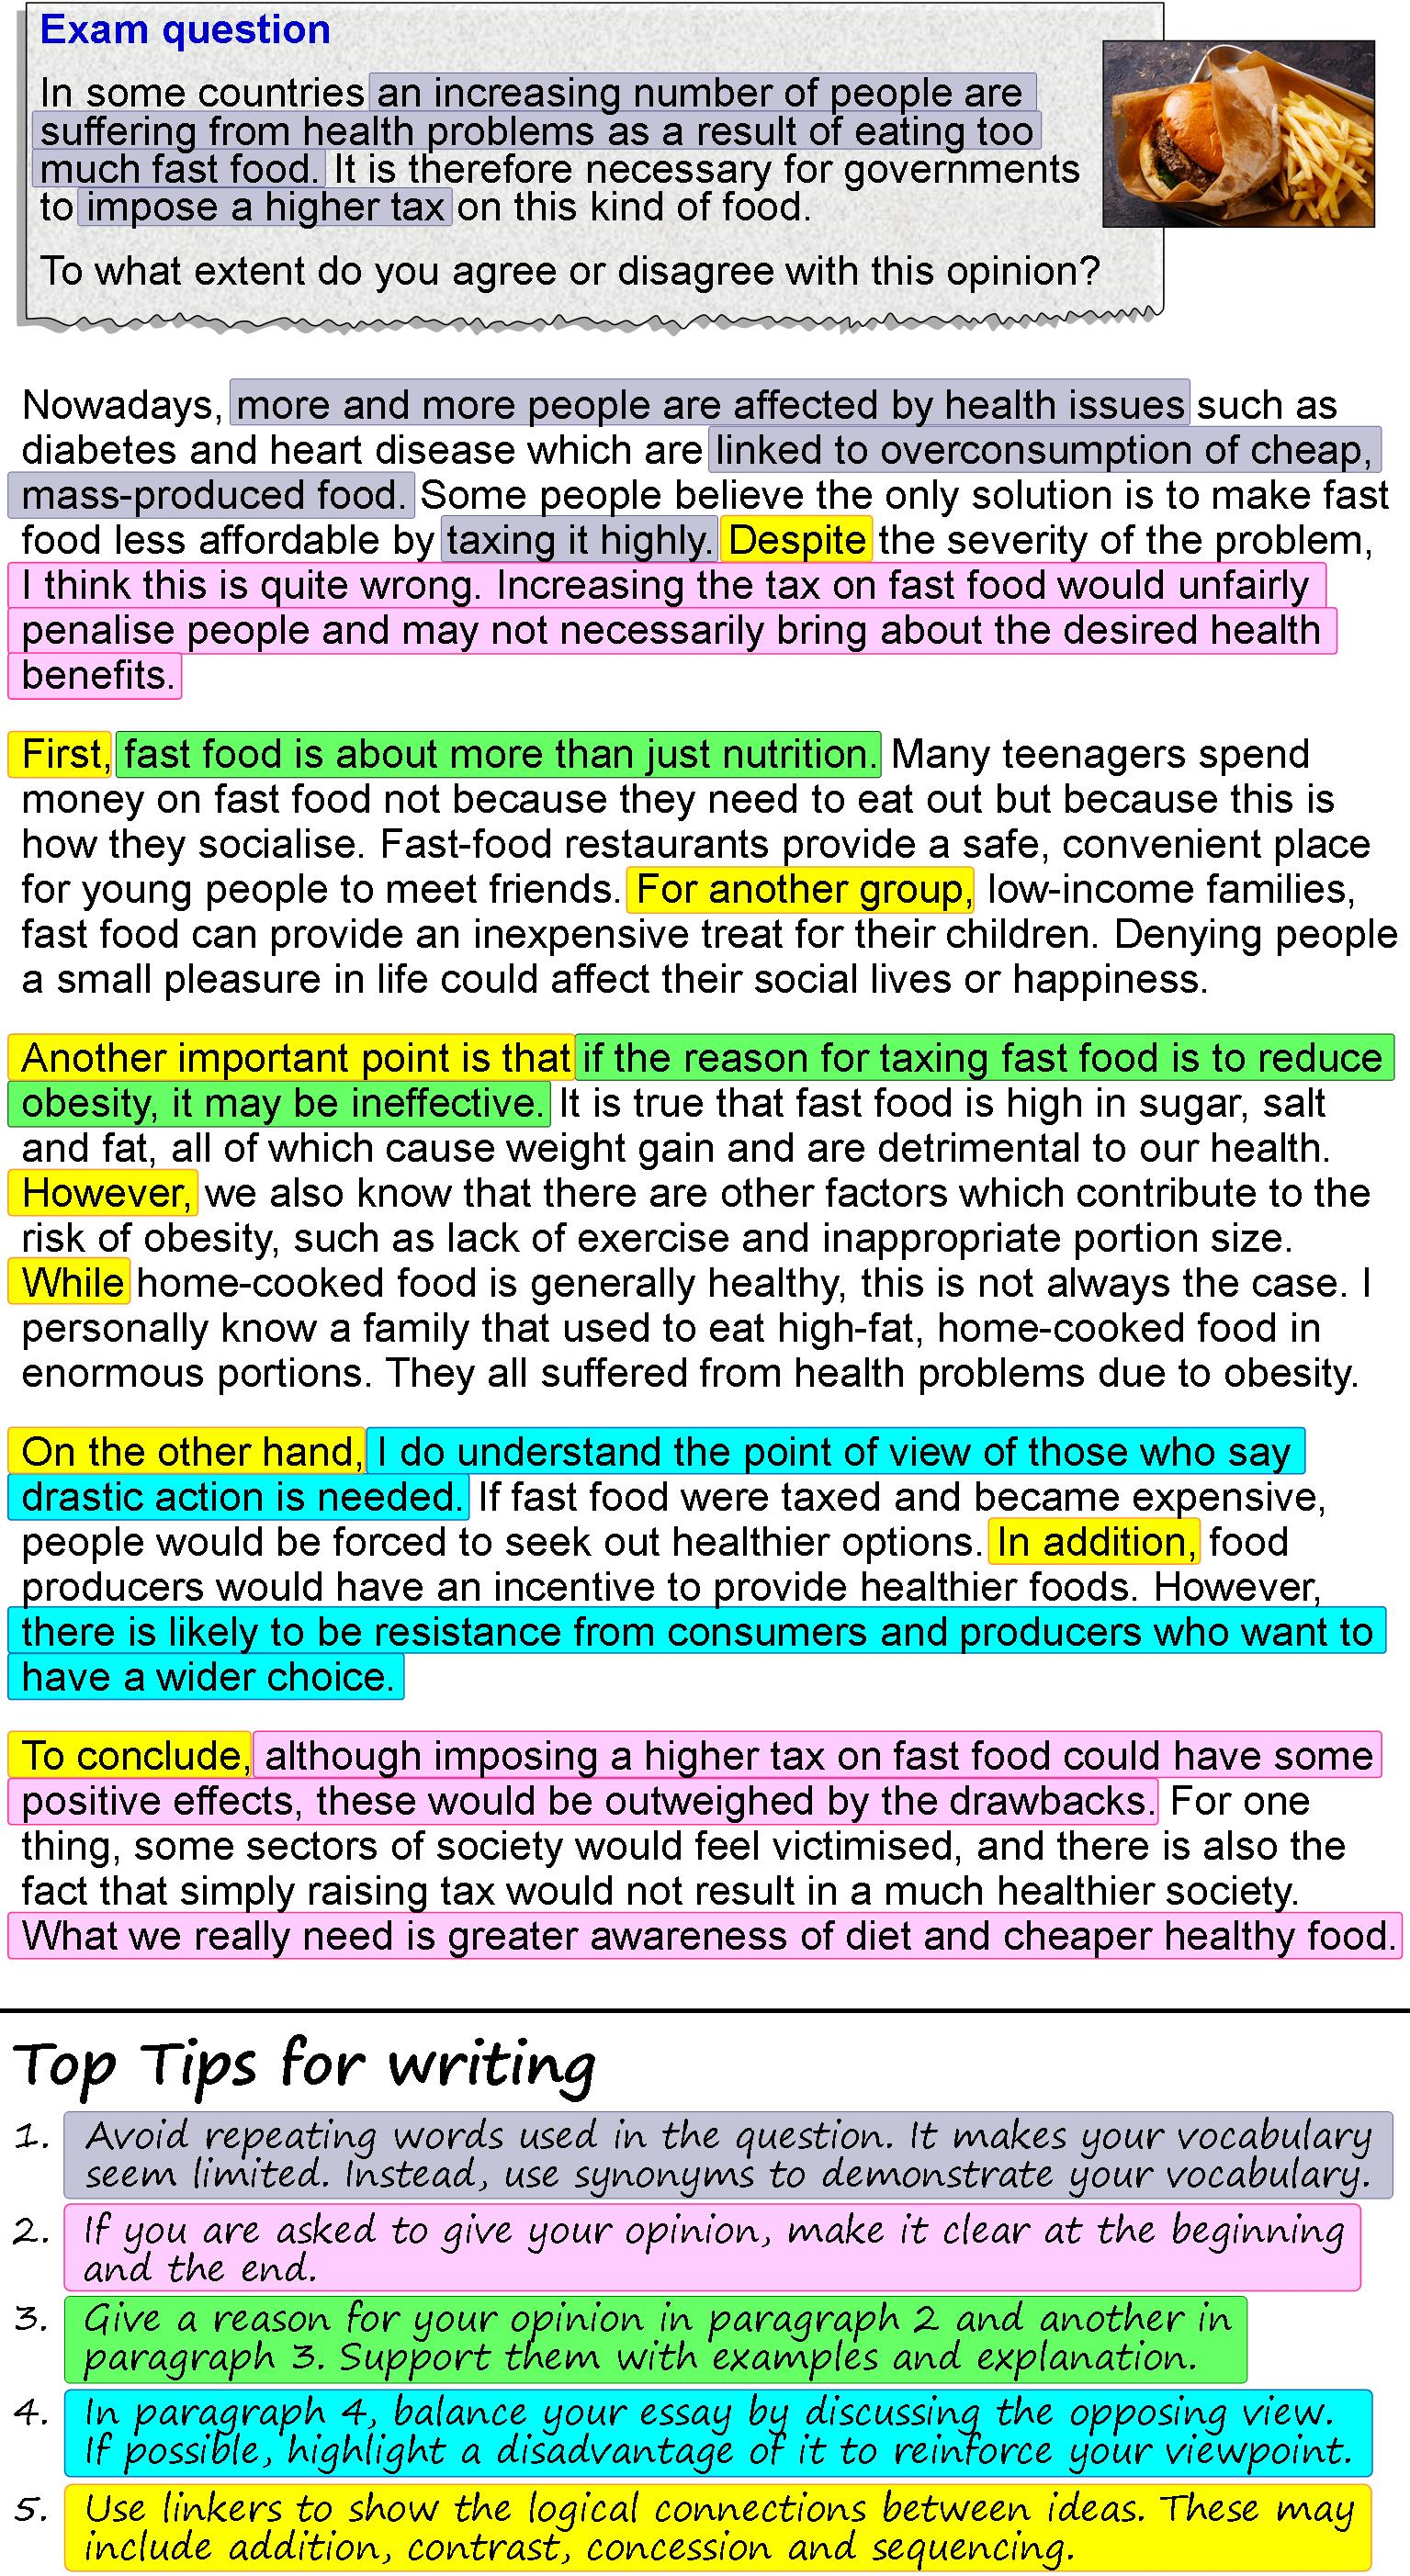 001 Opinion Essay About Fast Food Example An 4 Unbelievable Short British Council